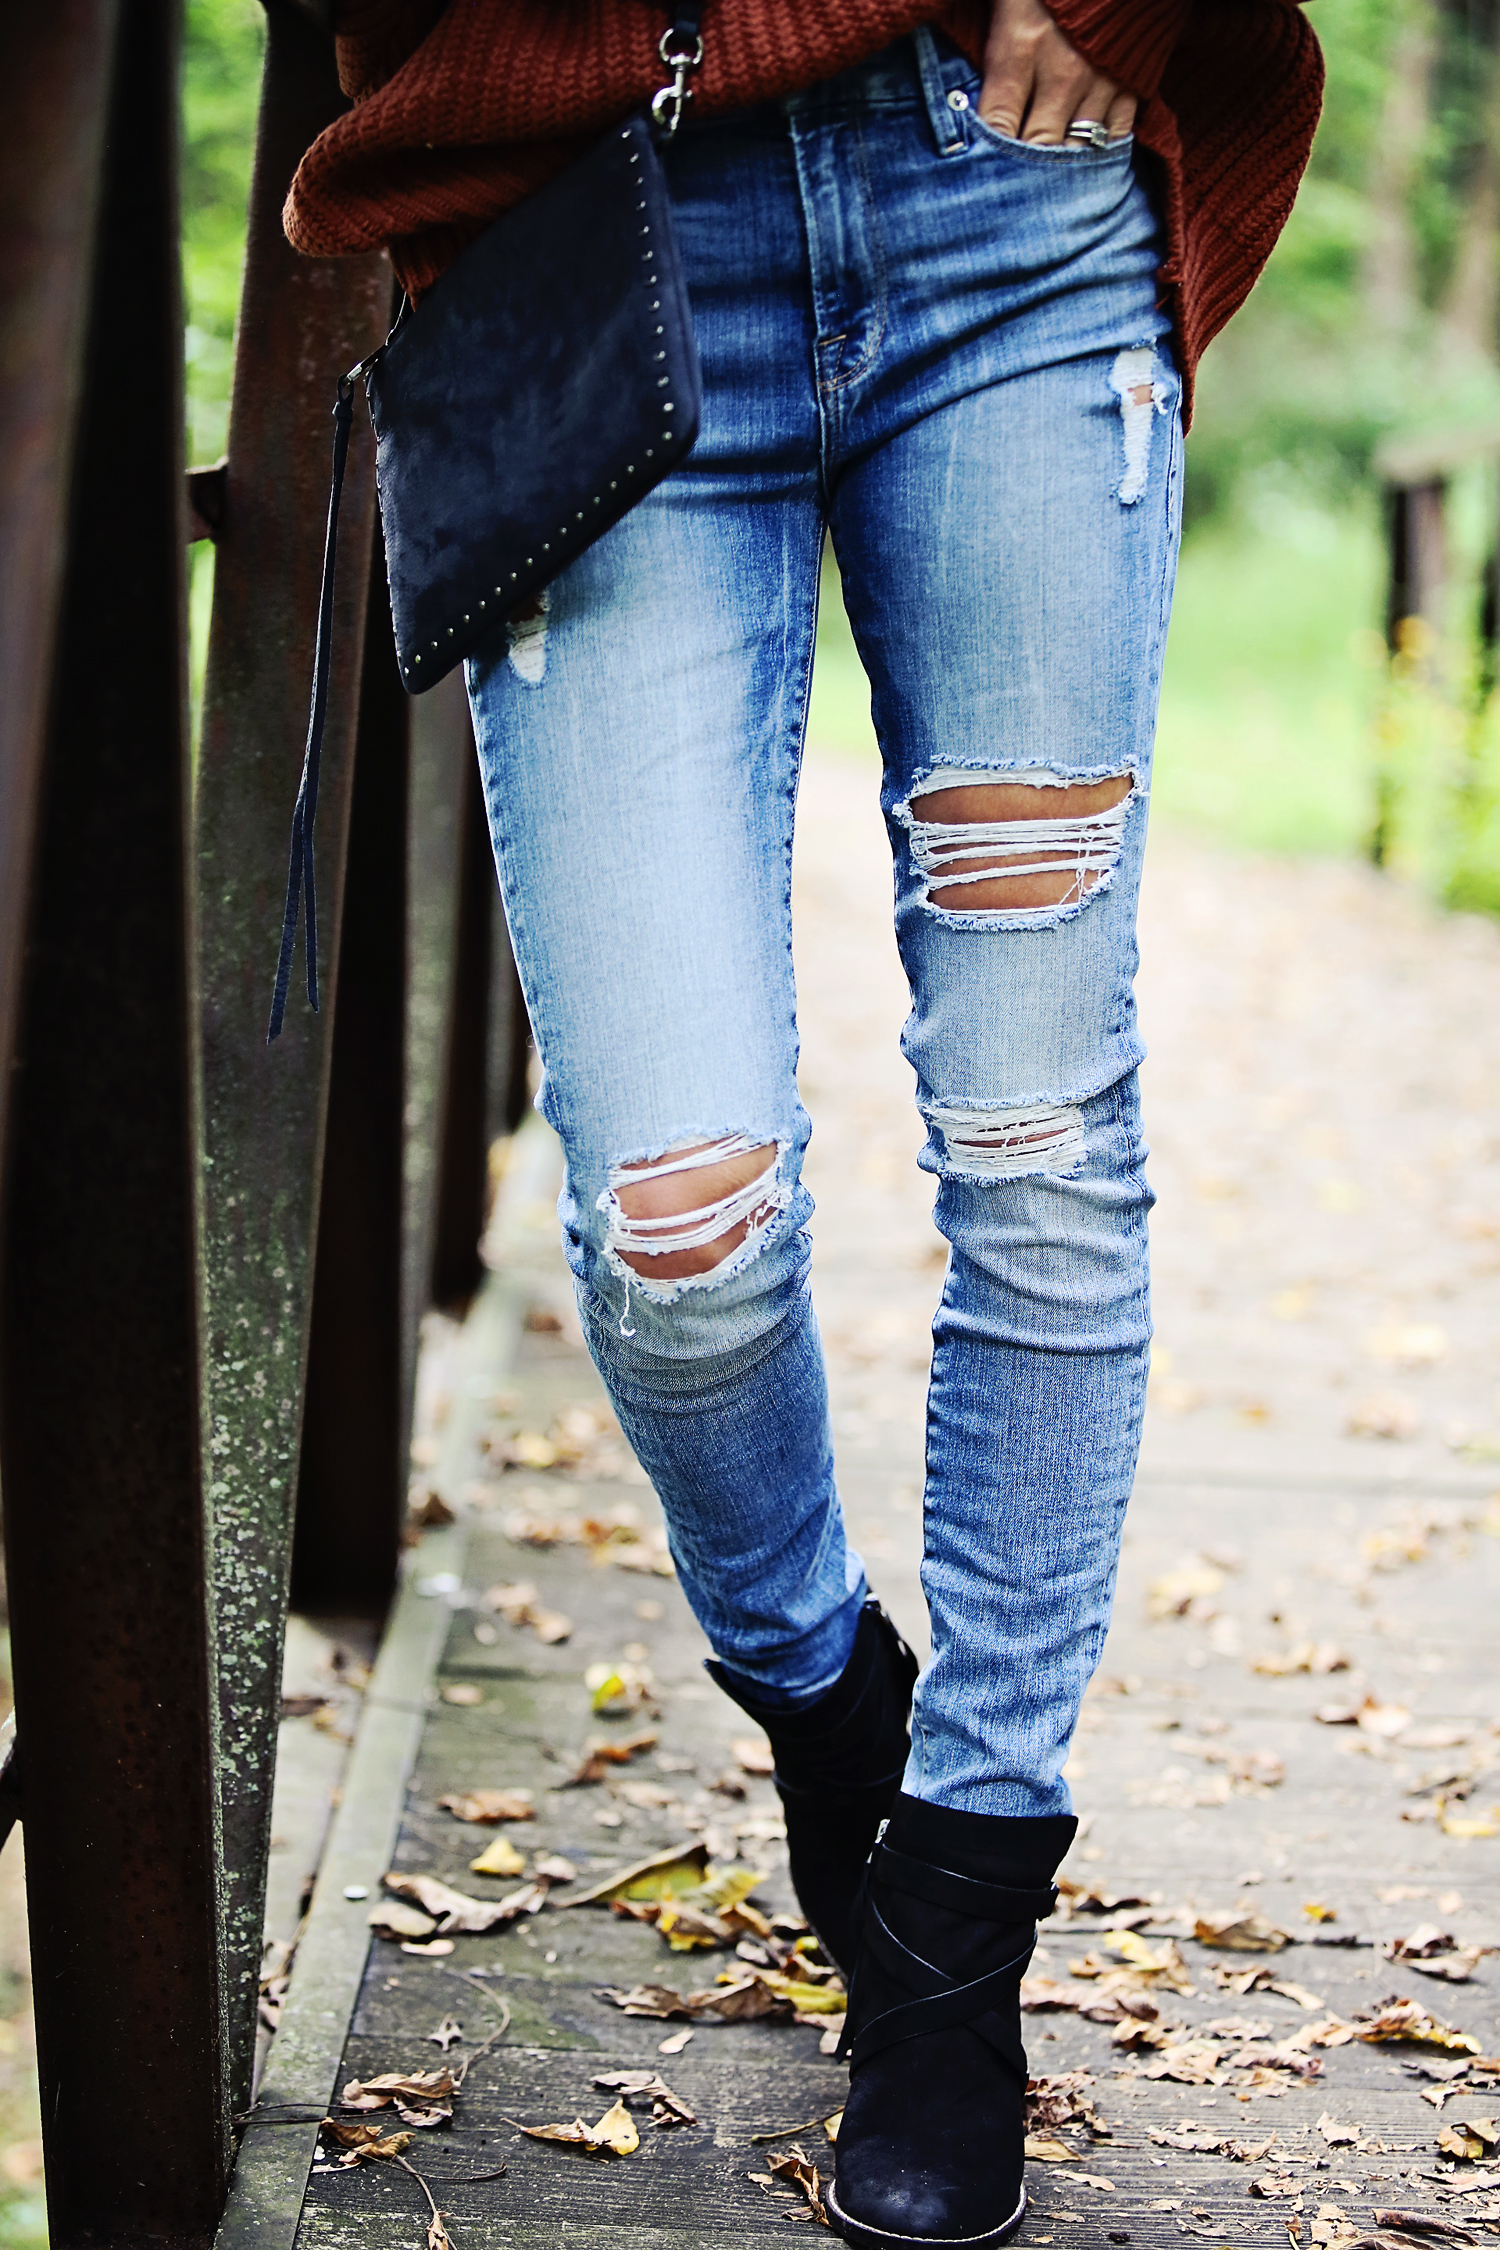 The Motherchic wearing good american jeans and sam edelman booties